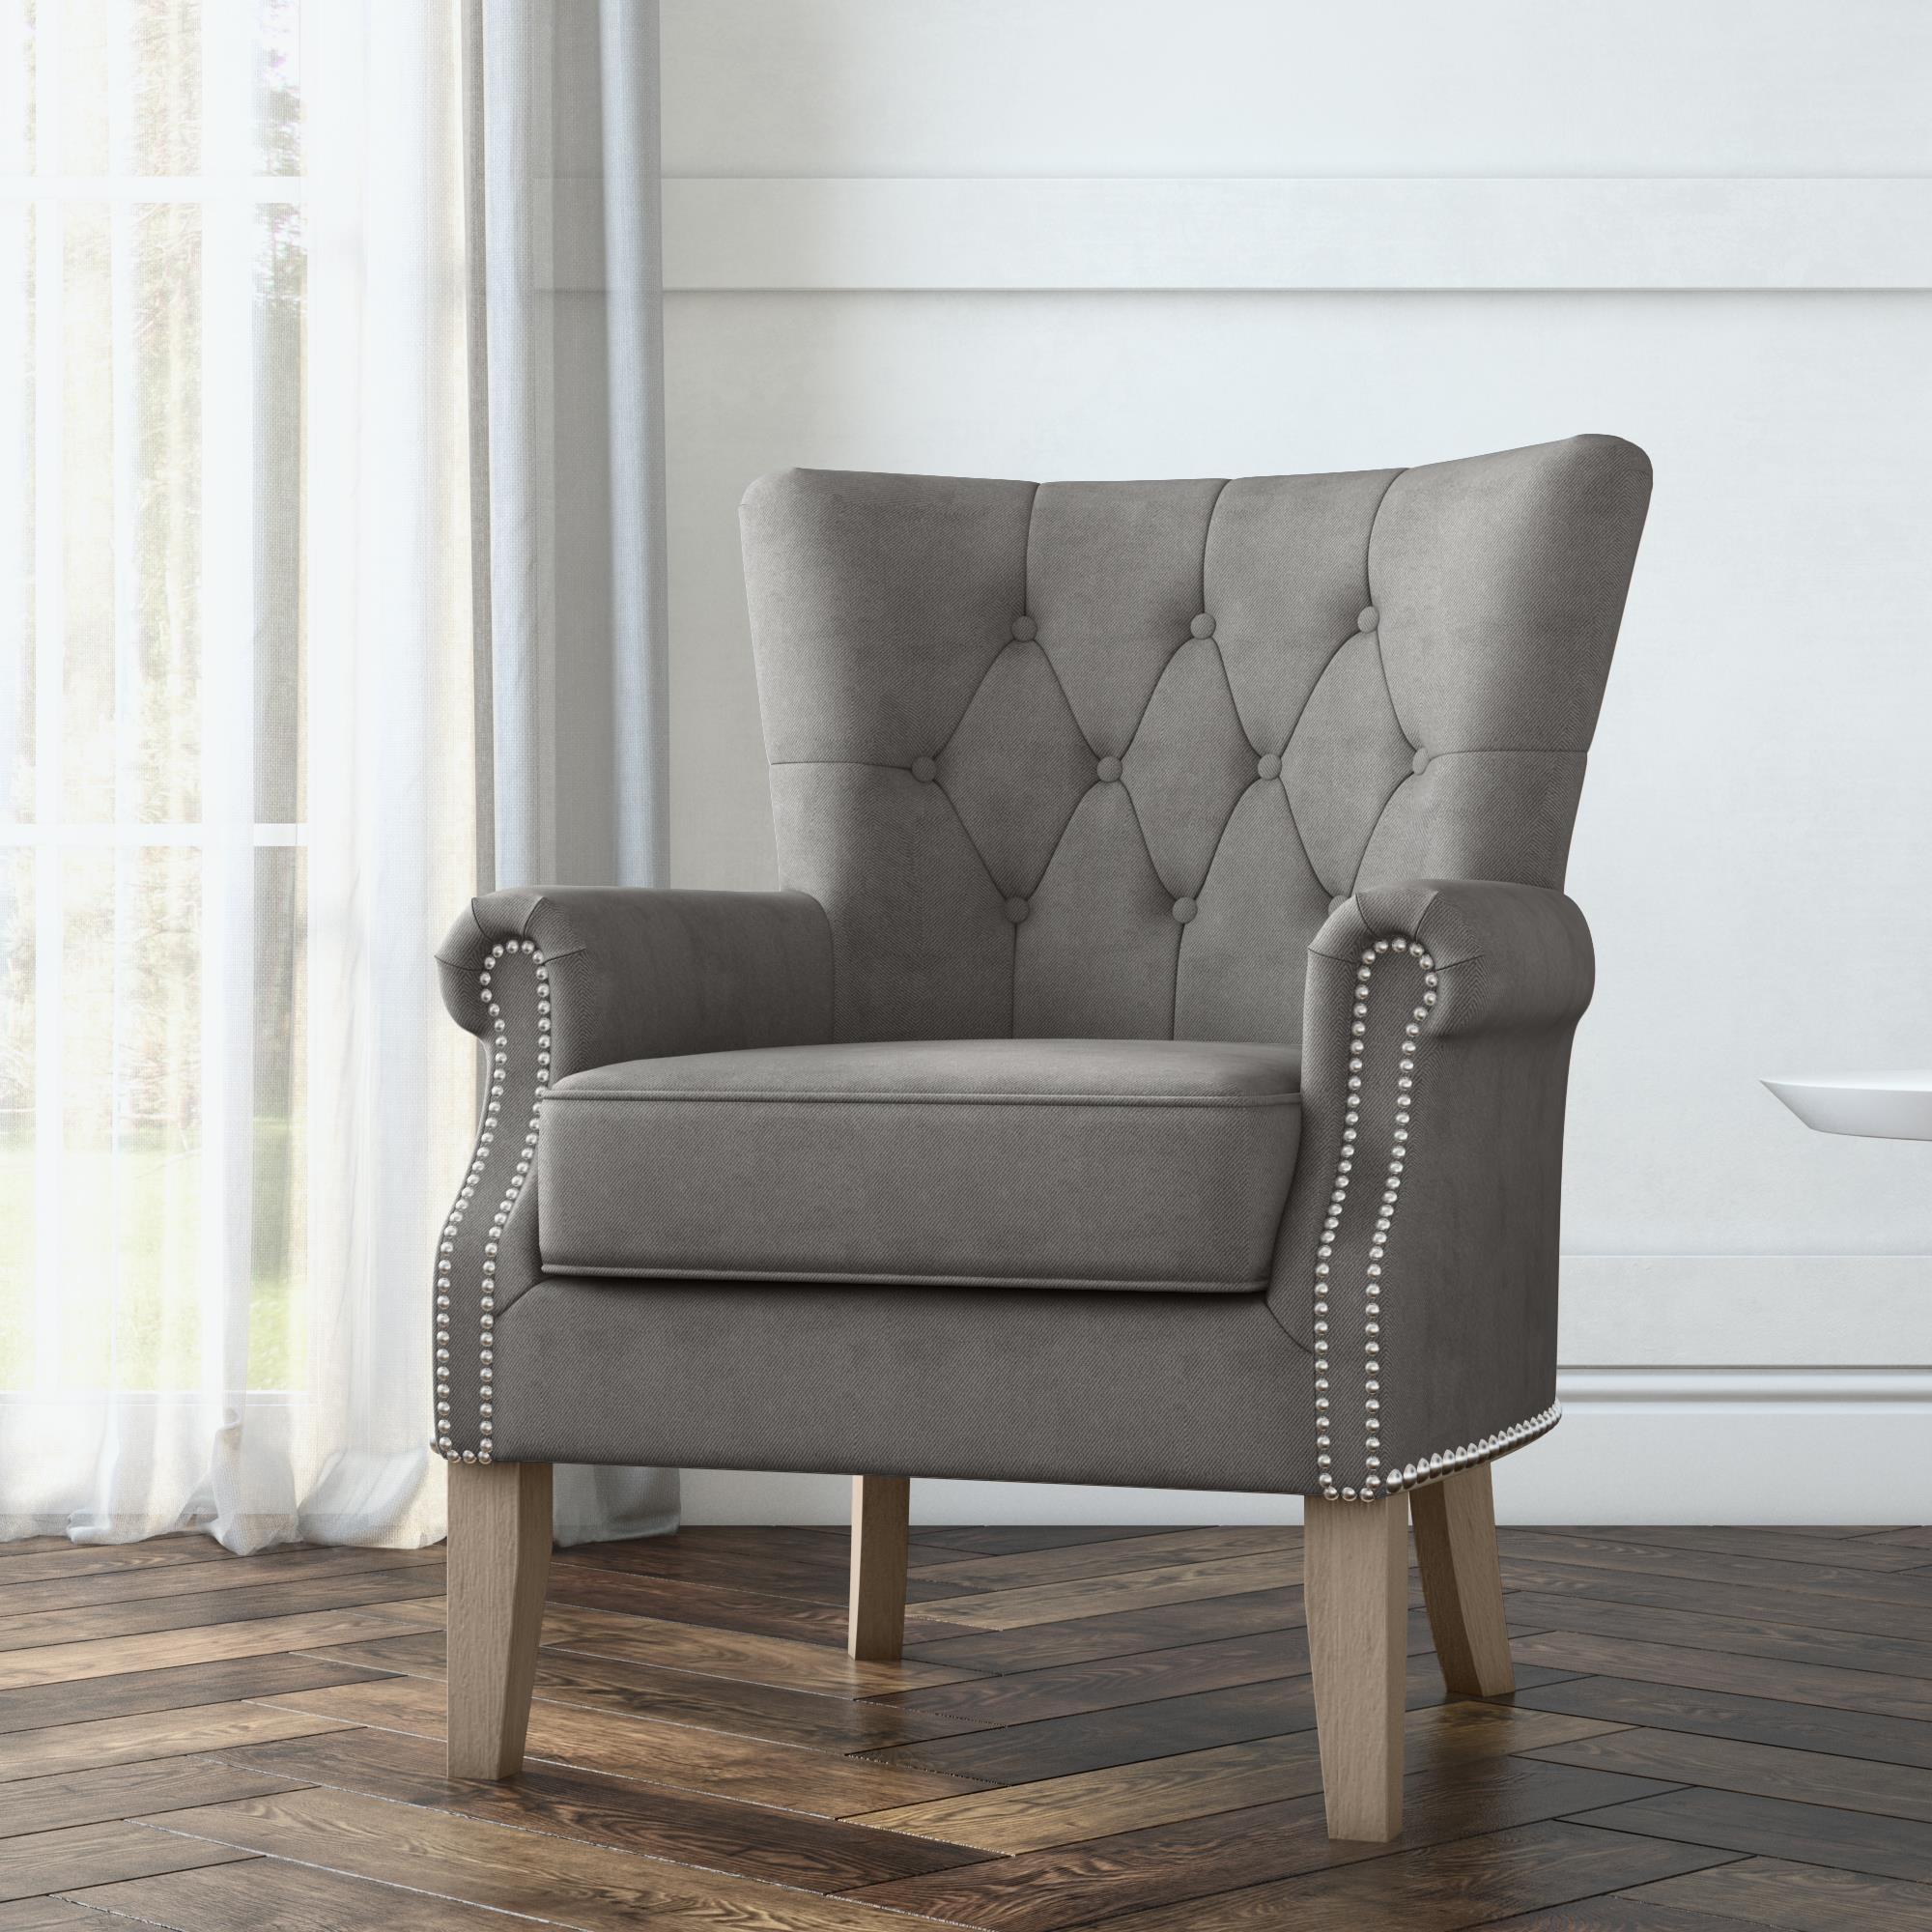 Better Homes & Gardens Accent Chair, Living Room & Home Office, Gray -  Walmart.com